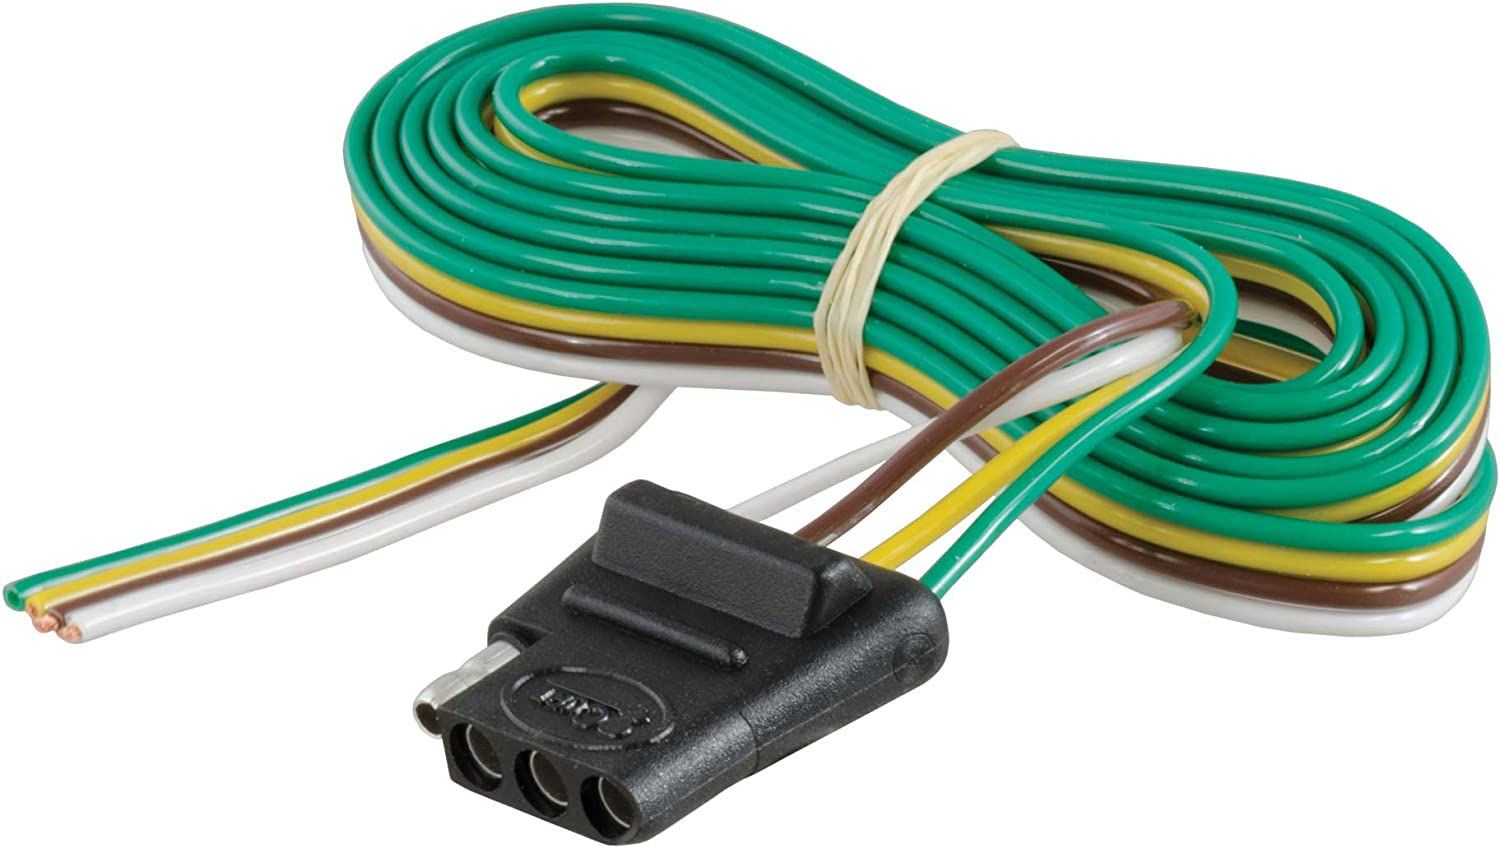 4 Pin Trailer Wiring Diagram Vehicle Side from images-na.ssl-images-amazon.com